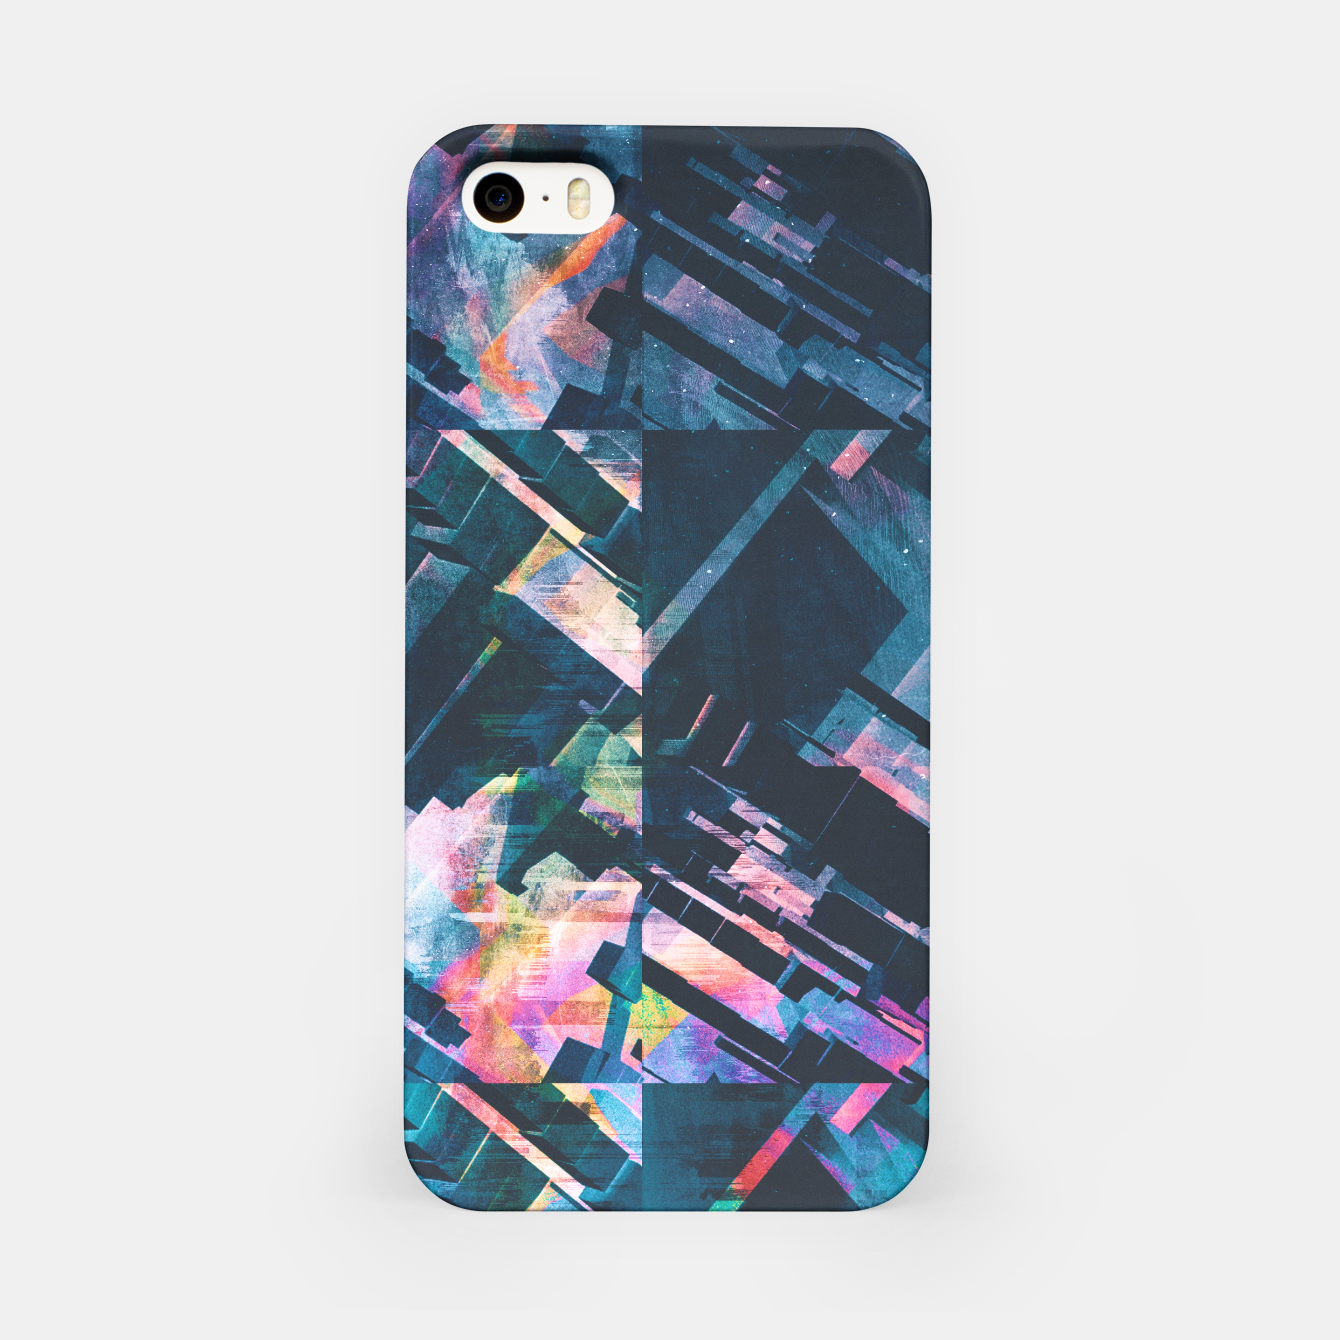 Image of Logic iPhone Case - Live Heroes